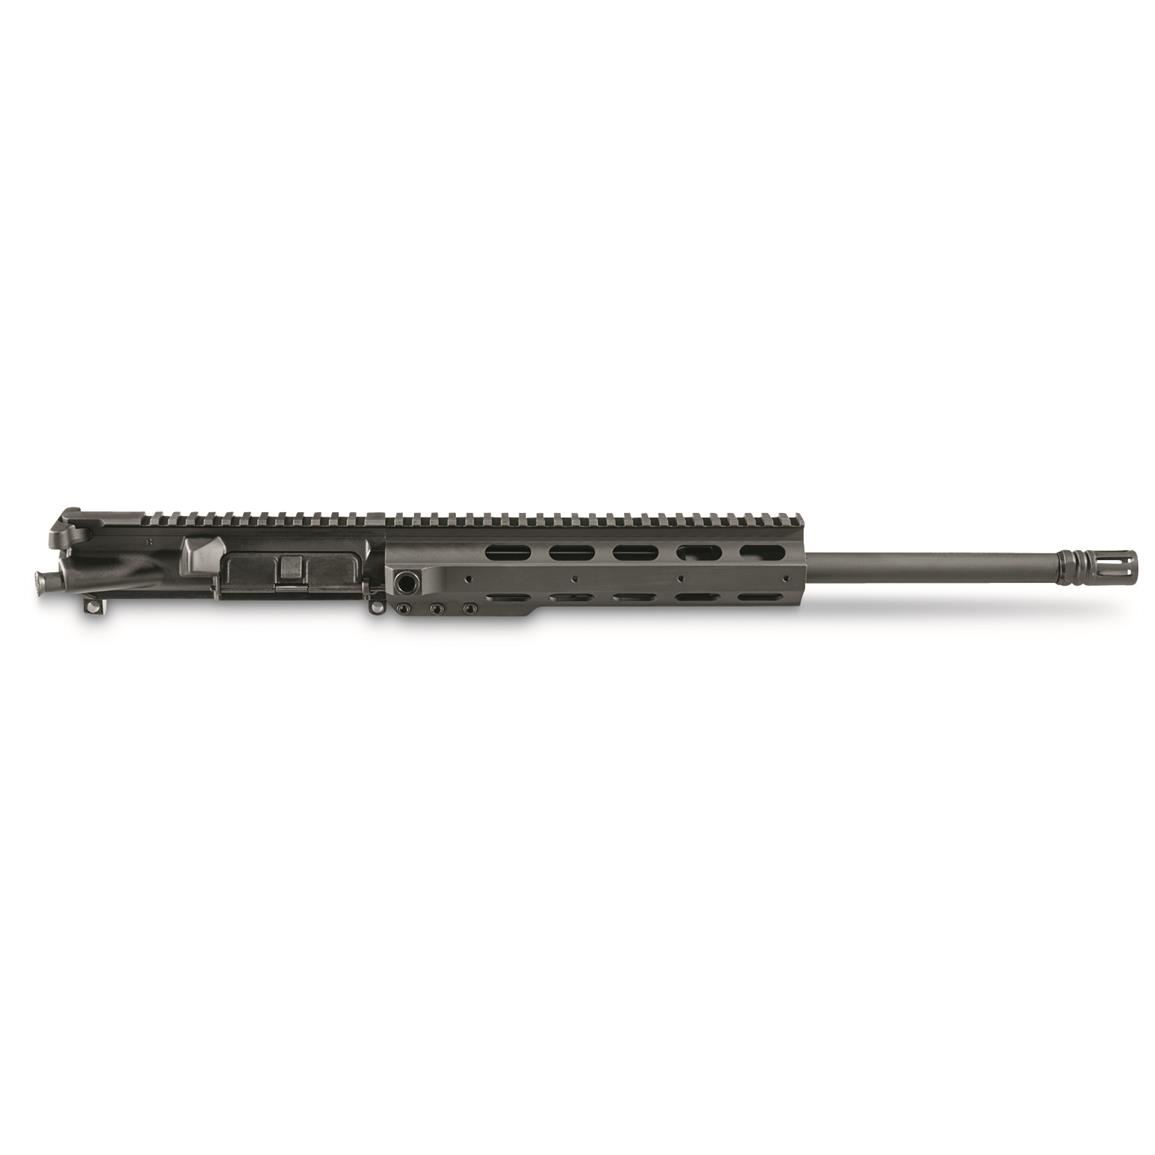 "Anderson 16"" EXT 300 Blackout Carbine Gas Complete Upper"